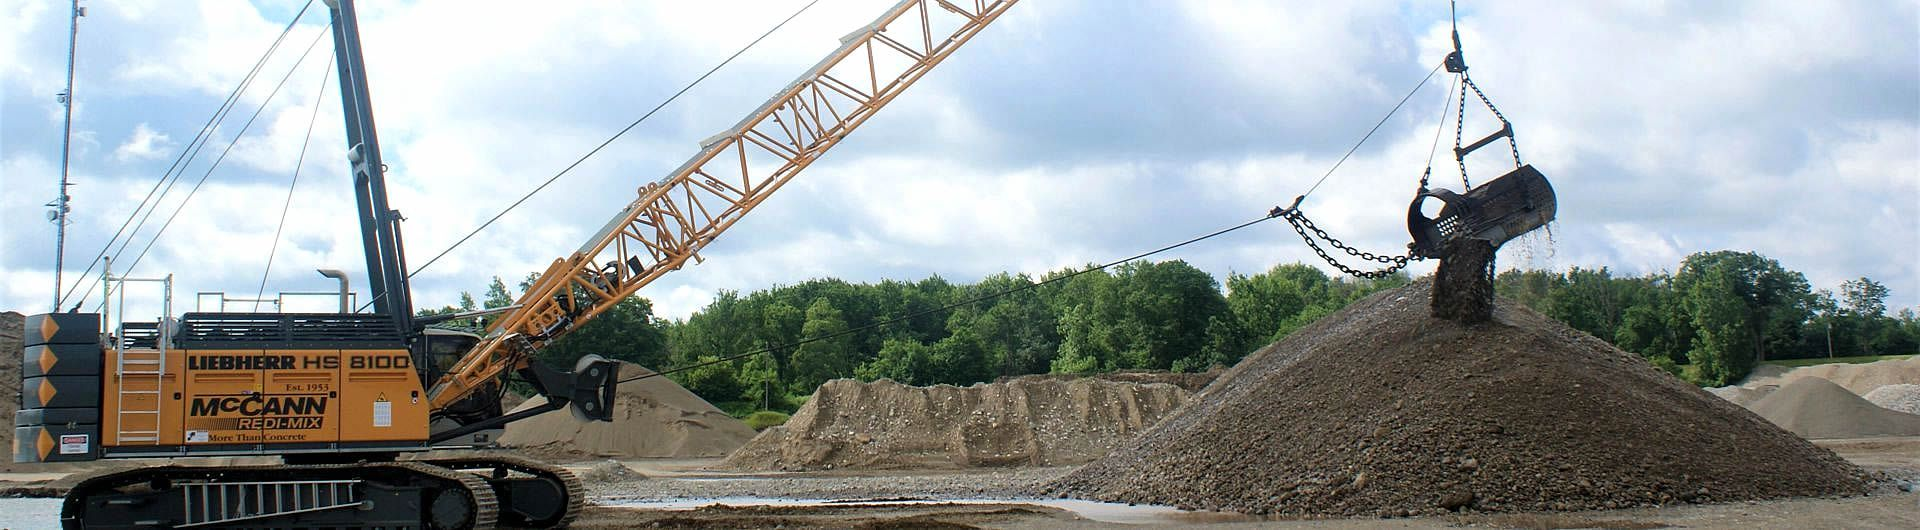 new dragline in gravel pit